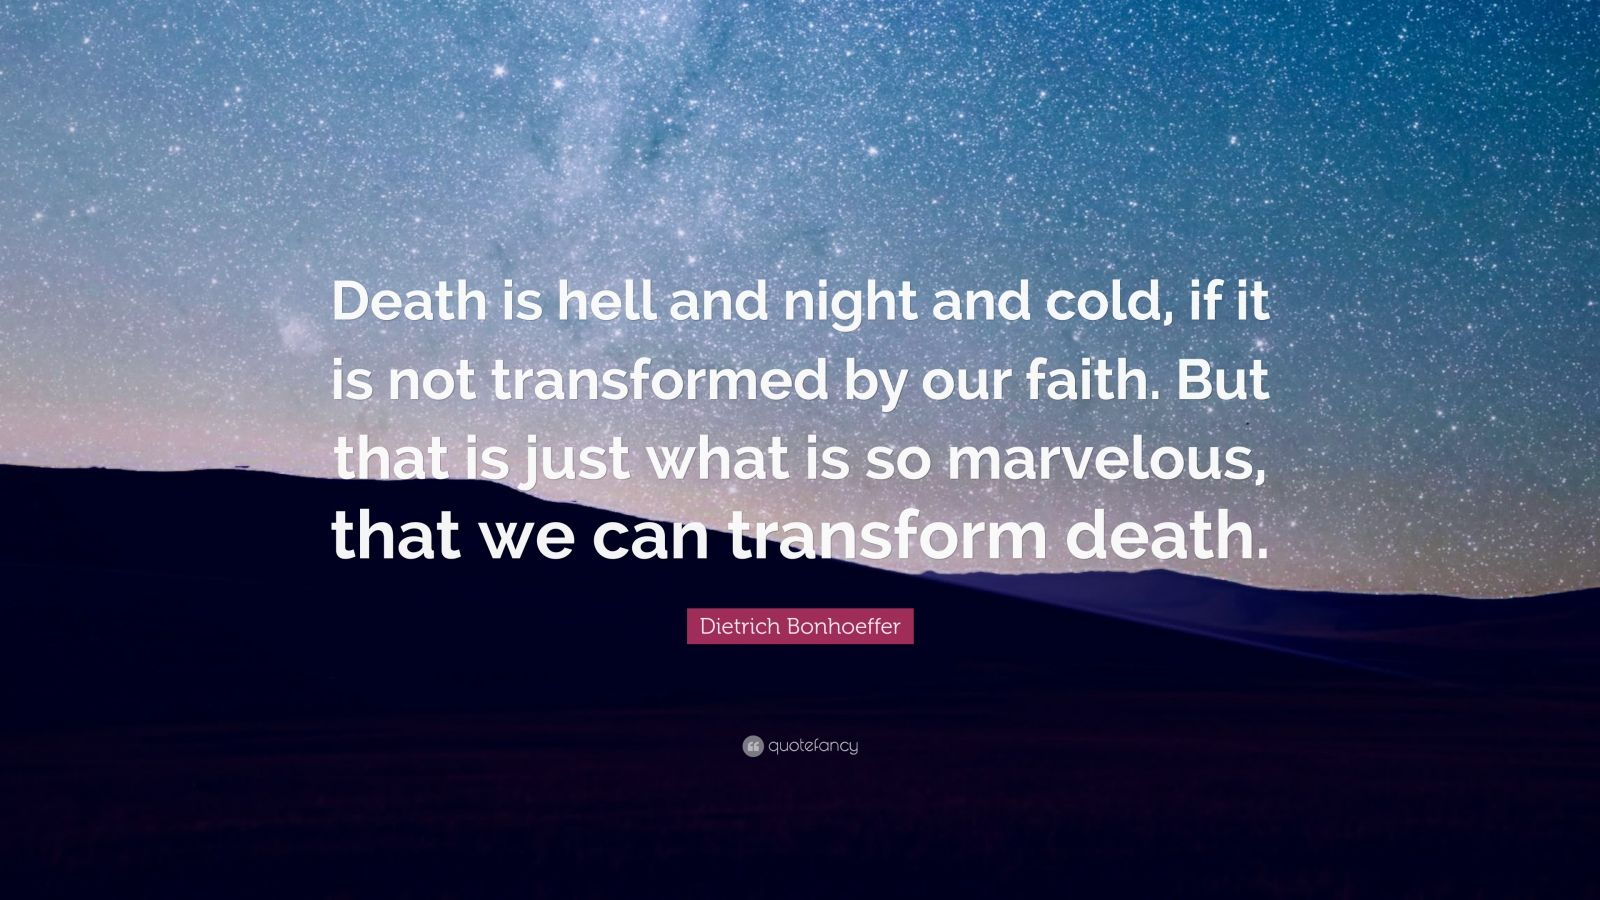 """Dietrich Bonhoeffer Quote: """"Death is hell and night and cold, if it is not transformed by our faith. But that is just what is so marvelous, that we can transform death."""""""